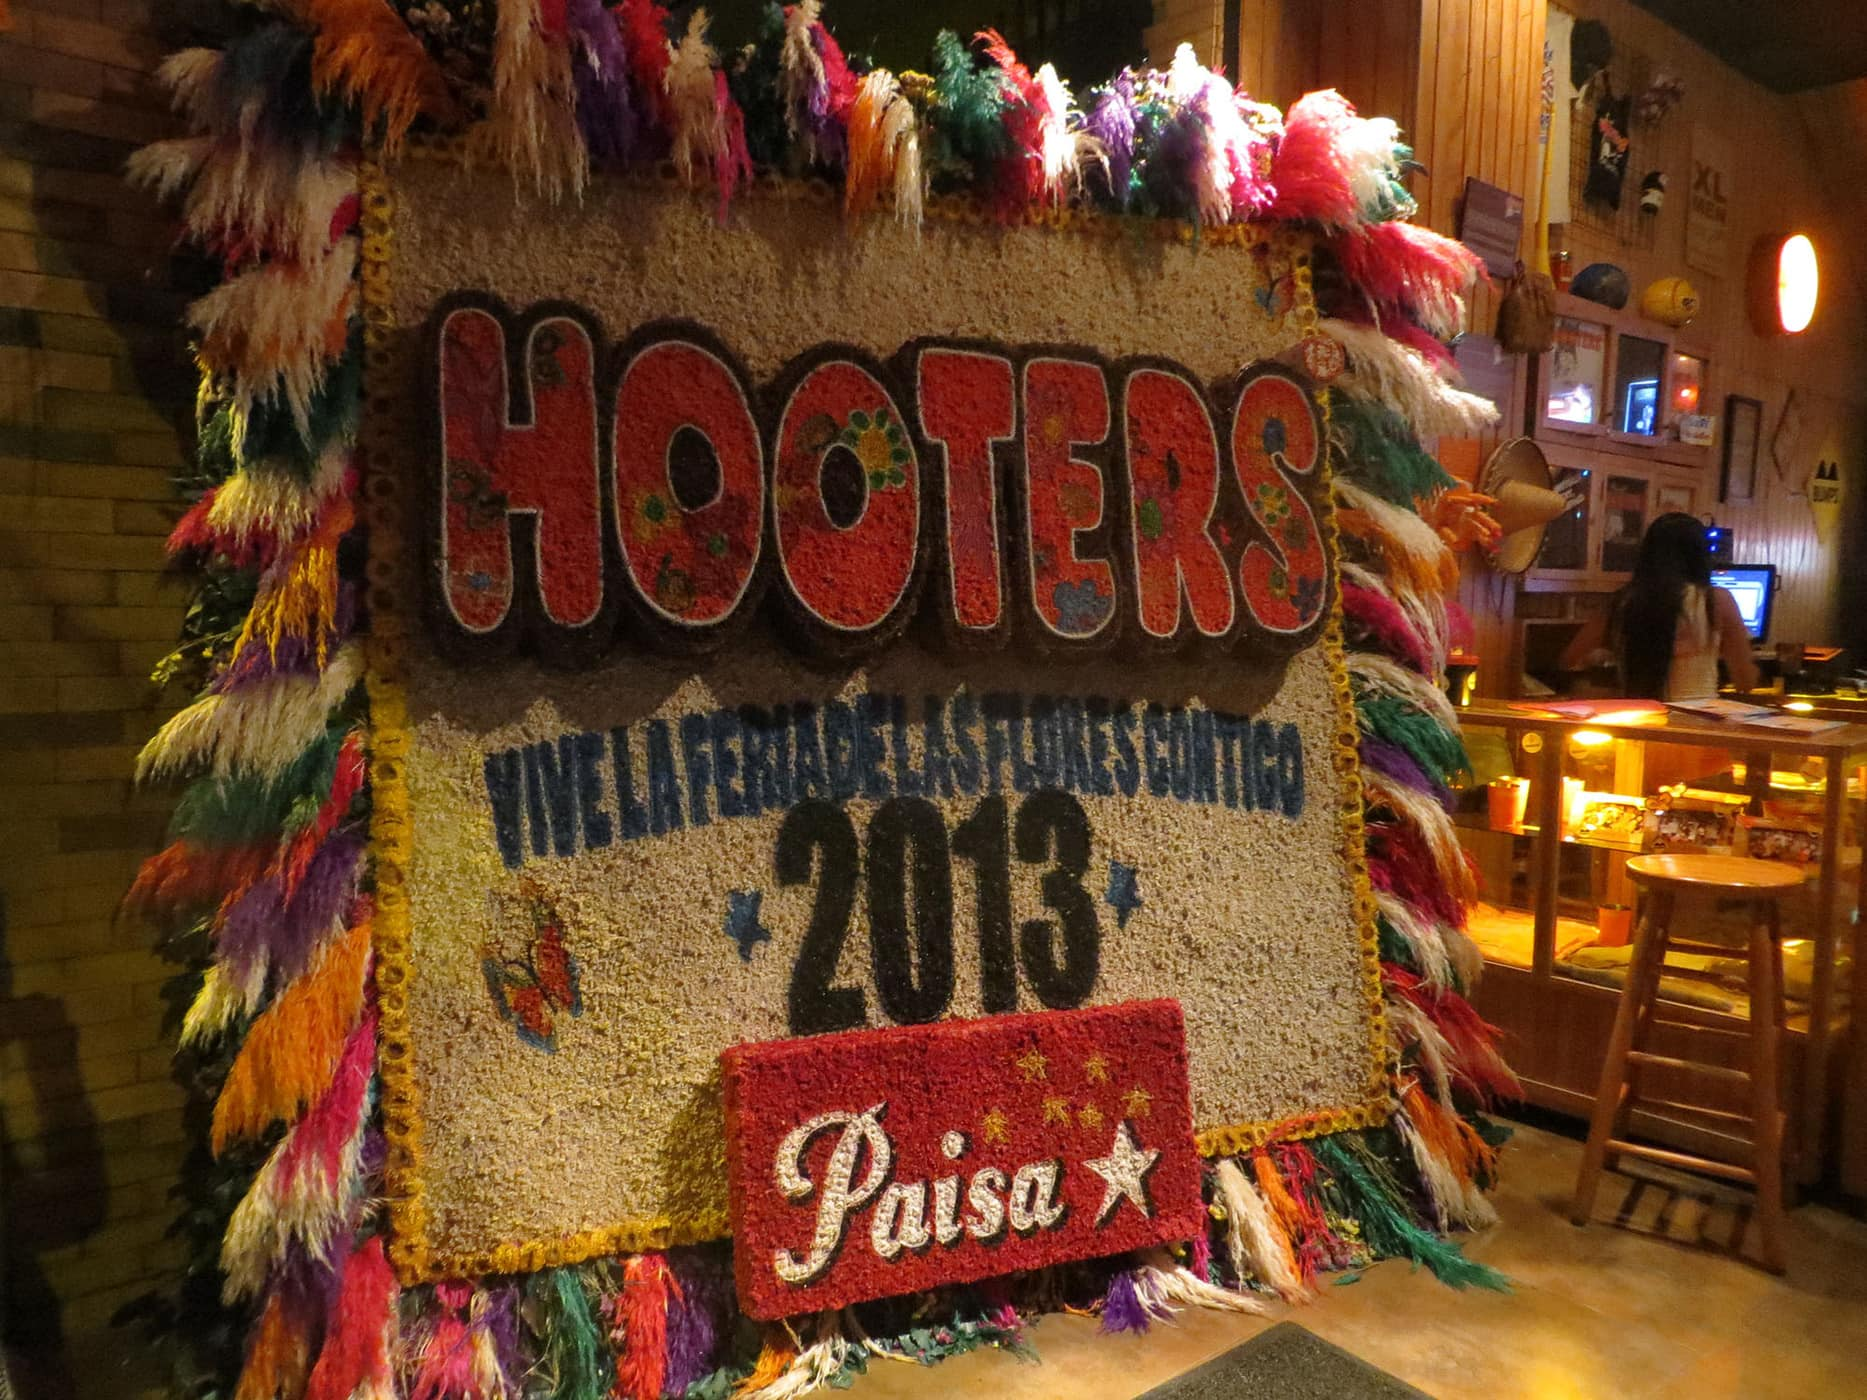 Hooters in Medellin, Colombia